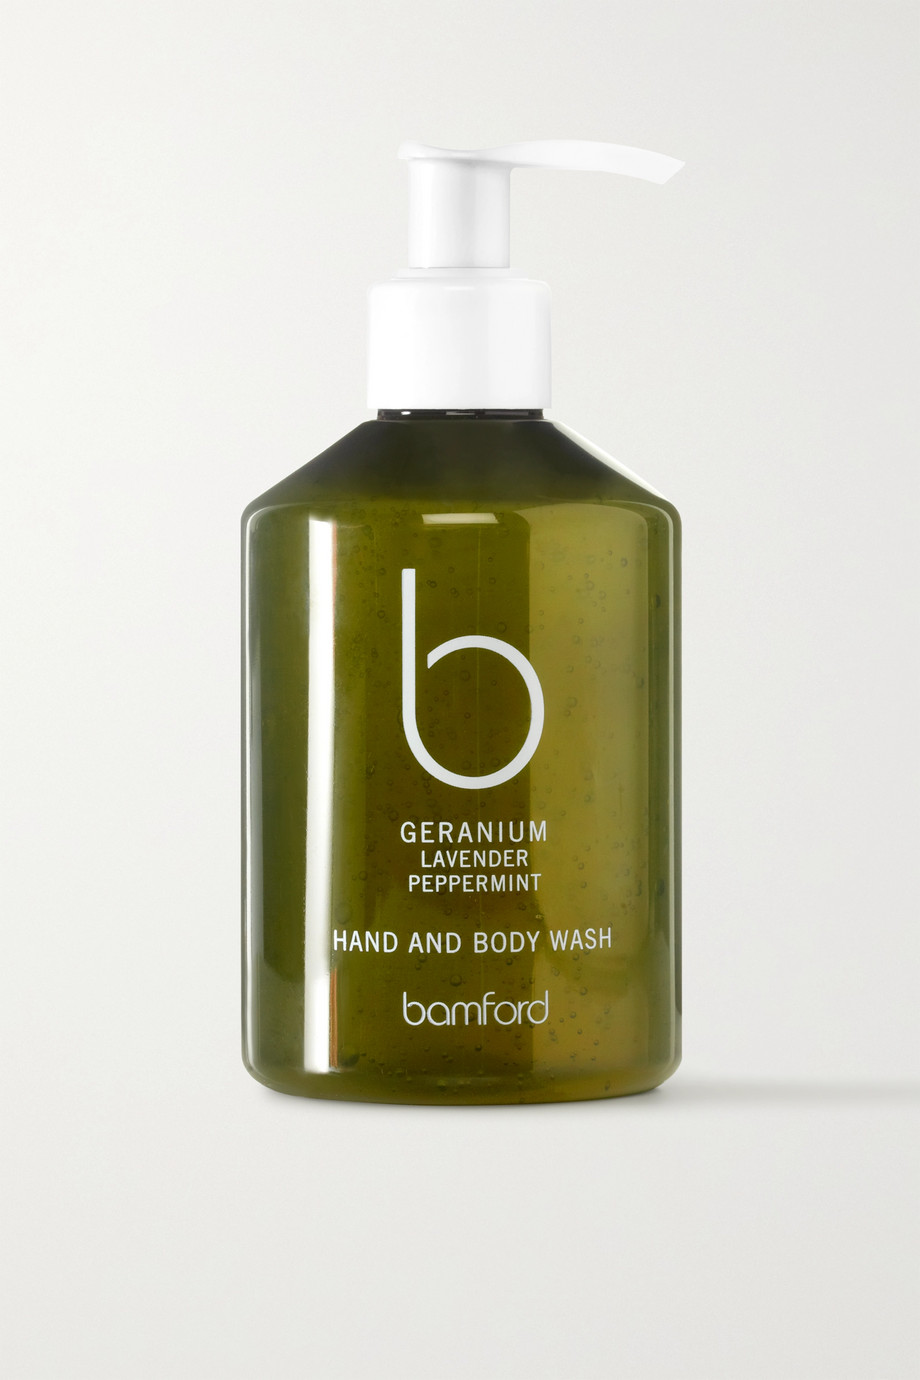 Bamford Geranium Hand & Body Wash, 250ml